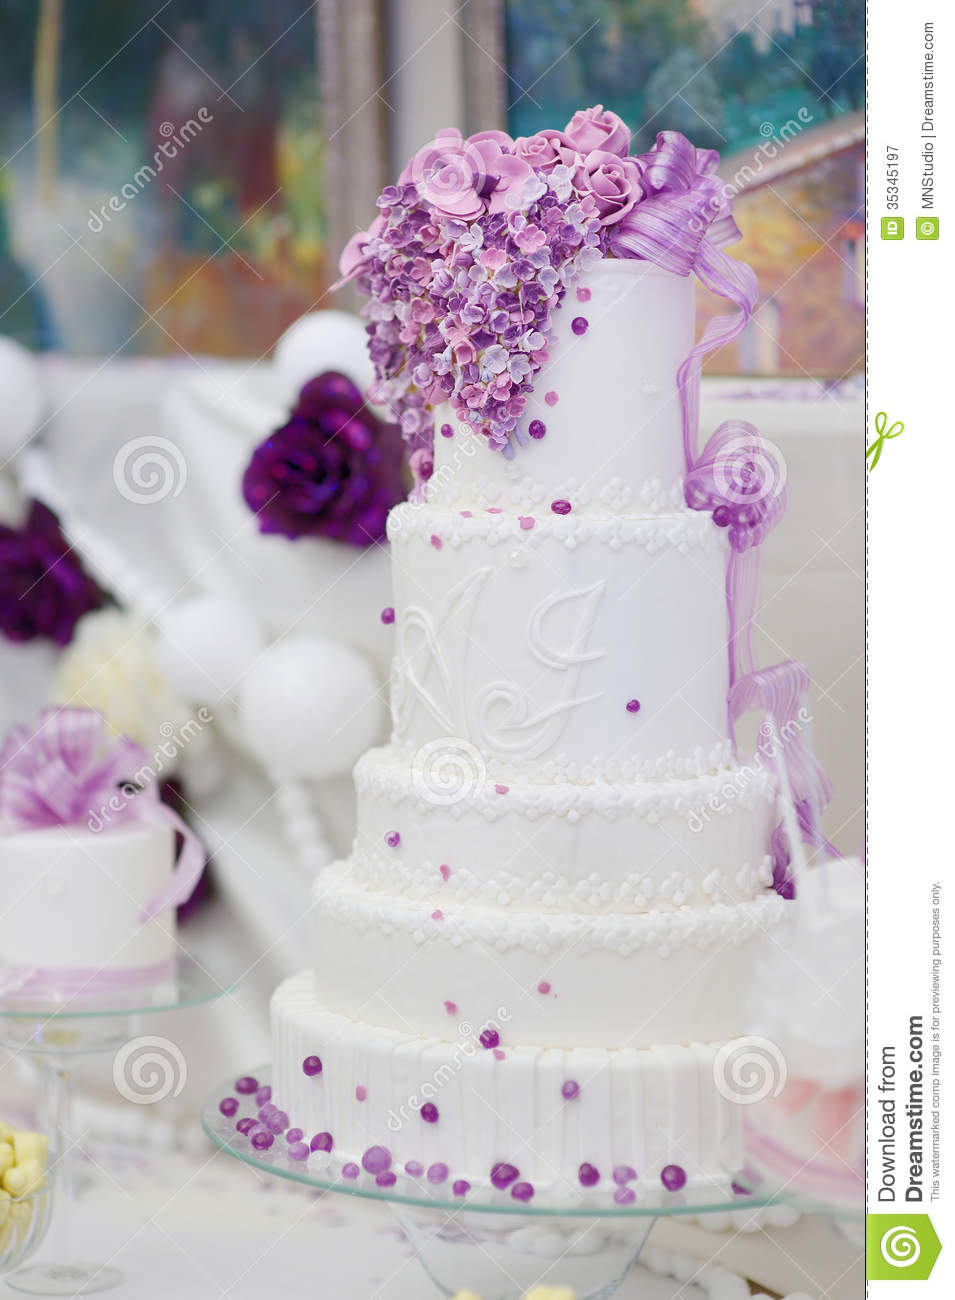 White Wedding Cake Decorated With Purple Flowers Stock Image